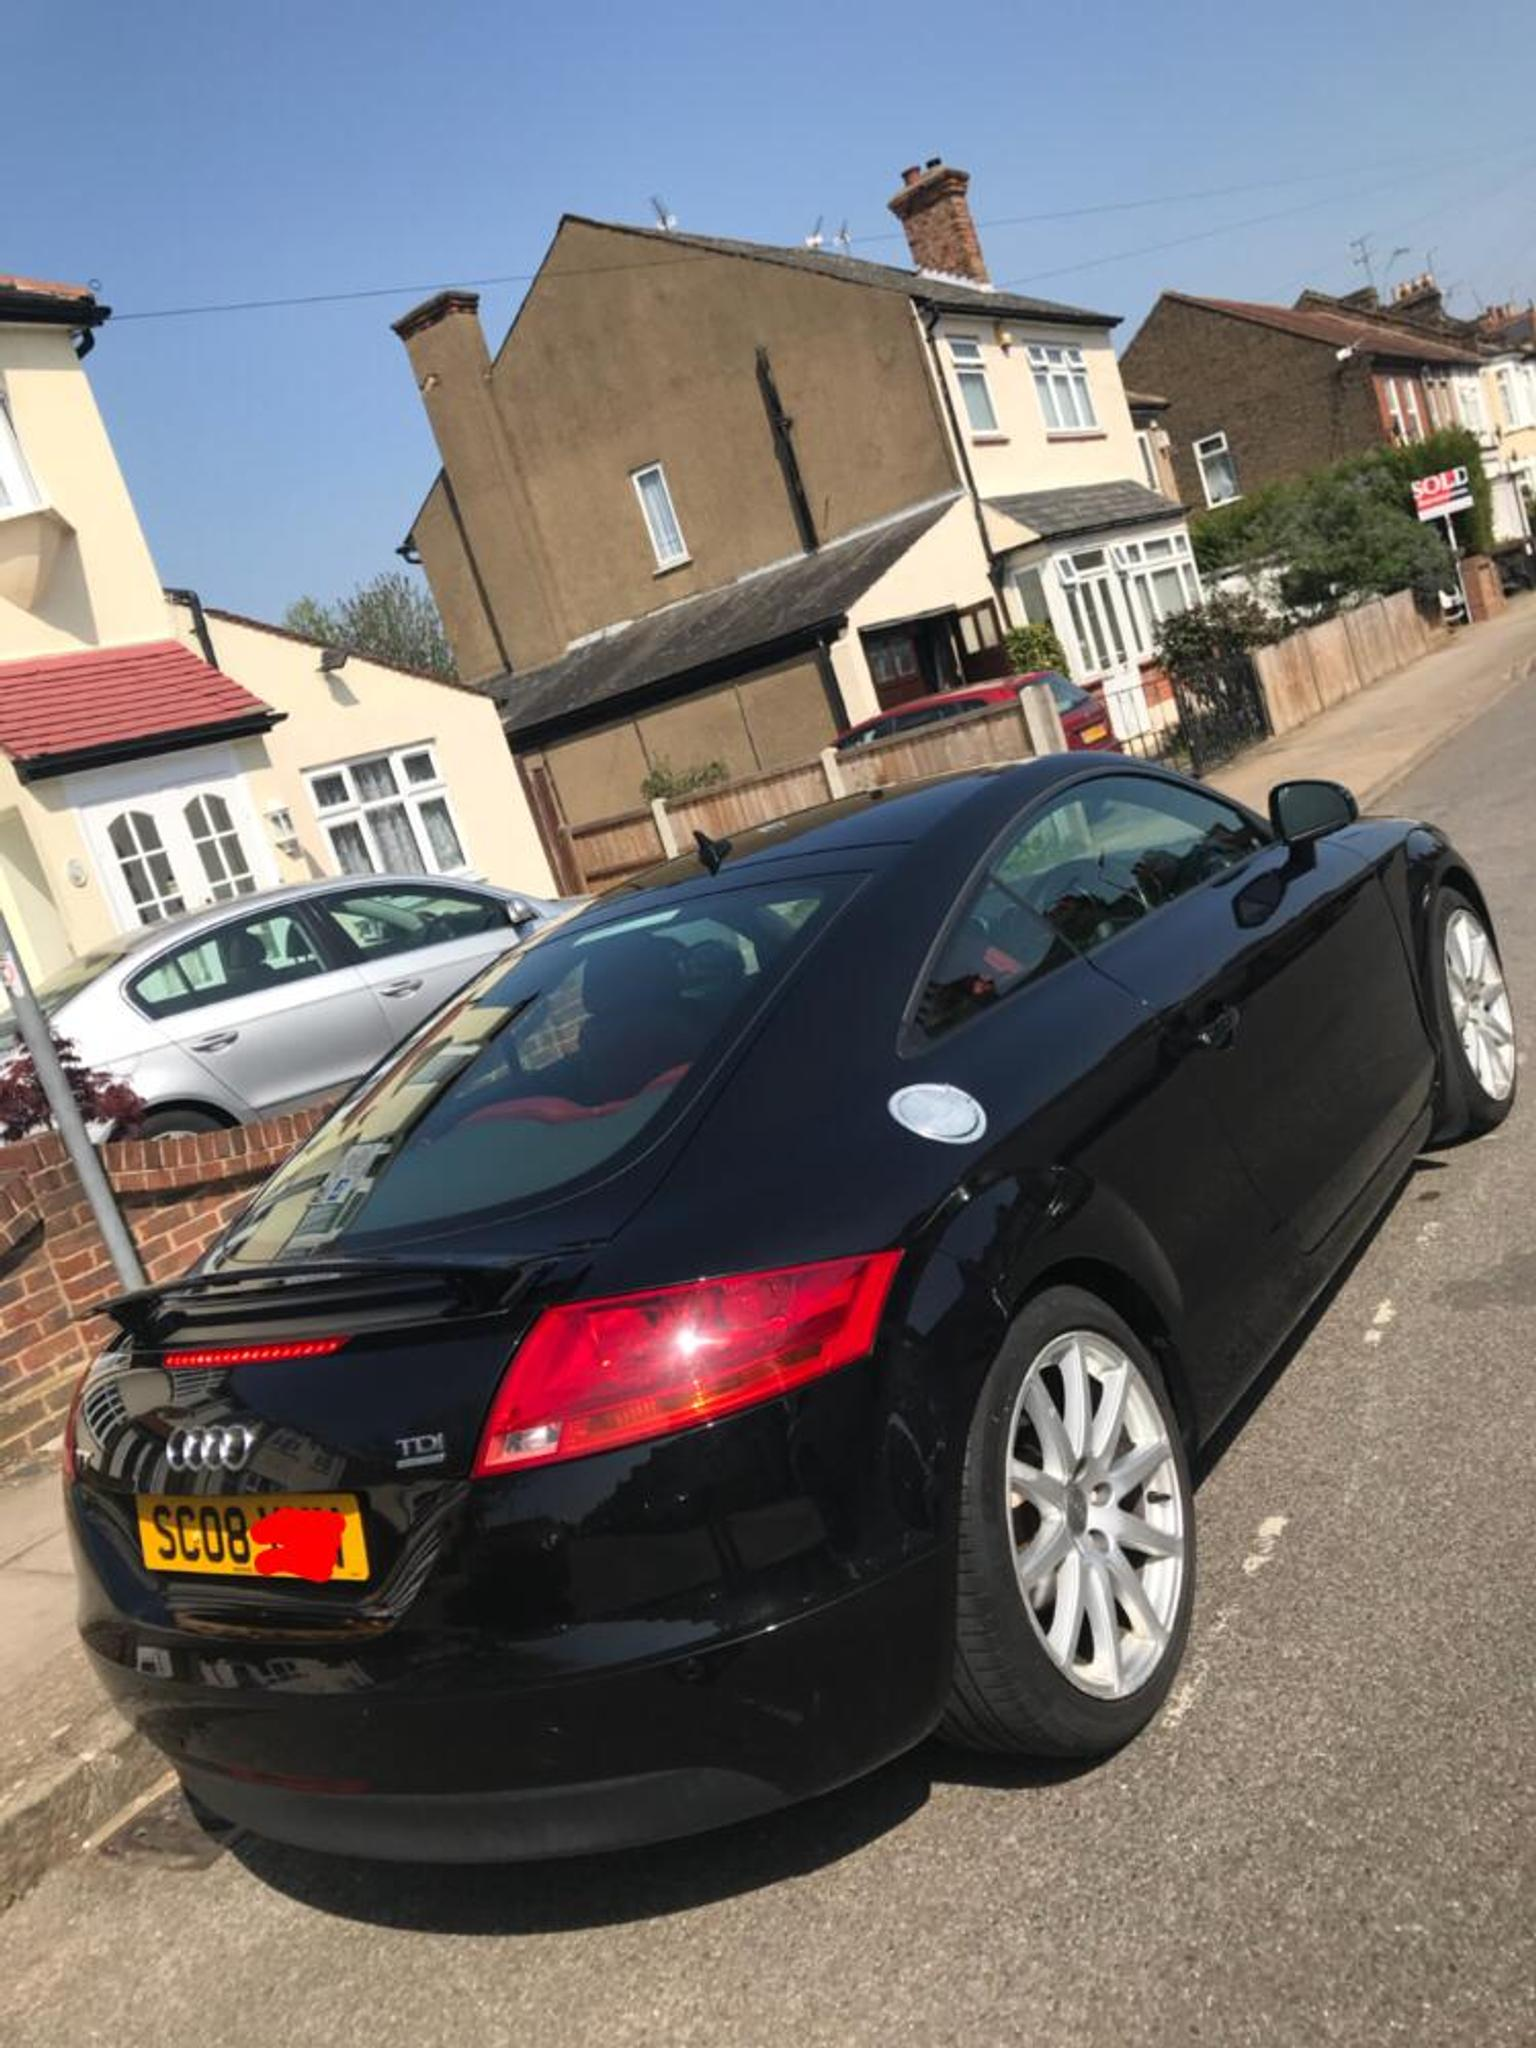 Picture of: 2008 Black Audi Tt With Red Leather Seats In London For 6 000 00 For Sale Shpock